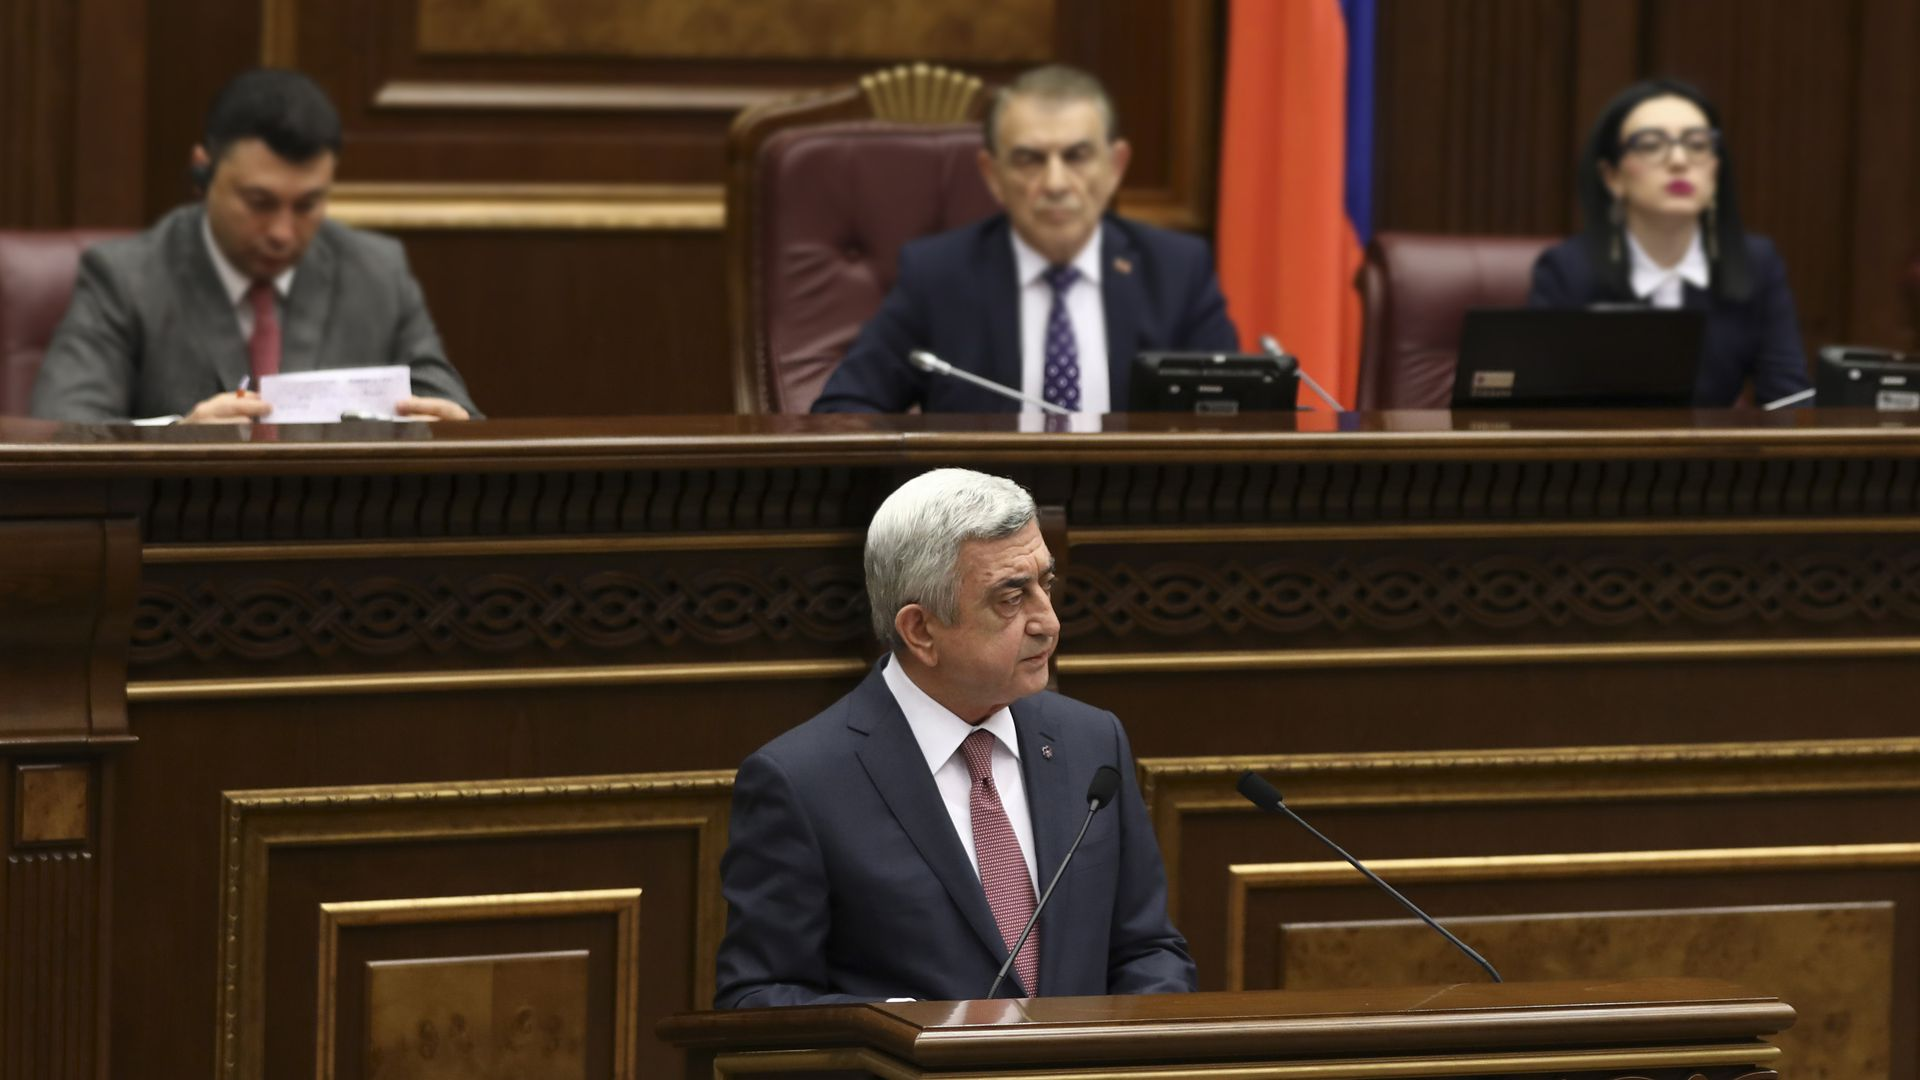 Armenia's former president Serzh Sarkisian at a session of parliament in Yerevan.